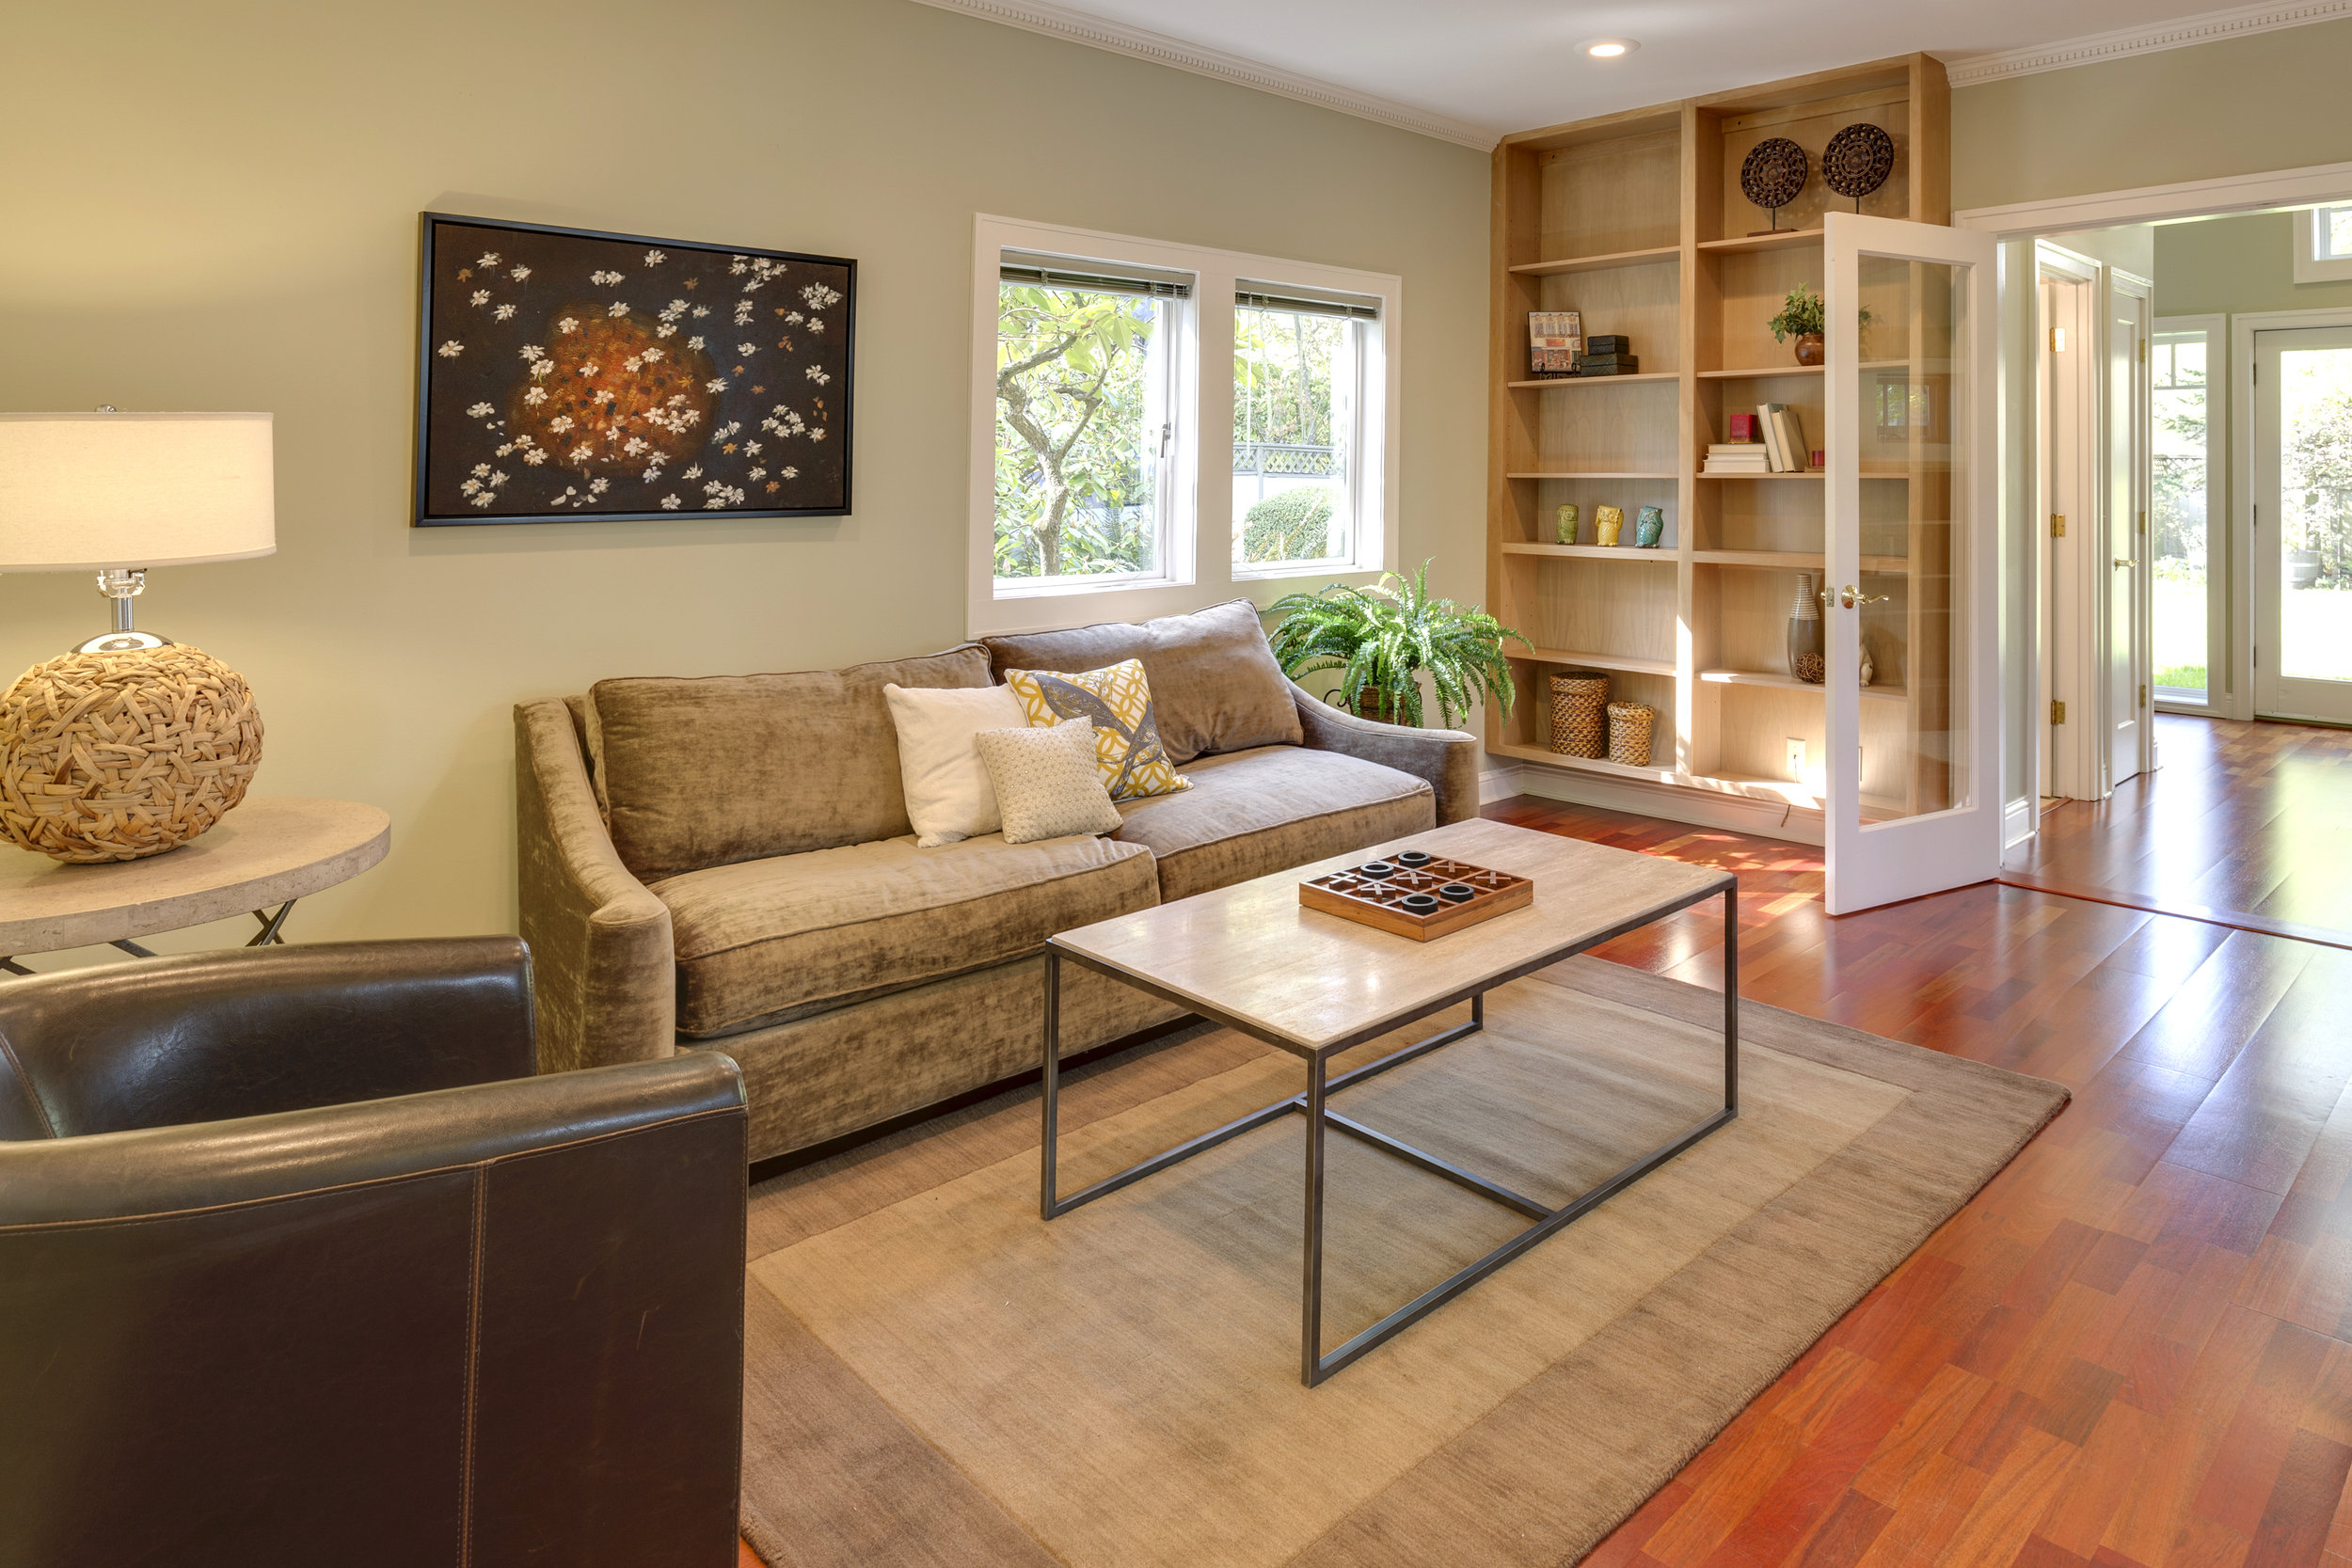 Staging Your Home - Staging is one of the free services we provide when you hire us to sell your home.Staging is a proven strategy to increase the value of your home. Buyers find it easier to visualize the home as their own & we often see an increase in showings & open house visitors when the home is staged.